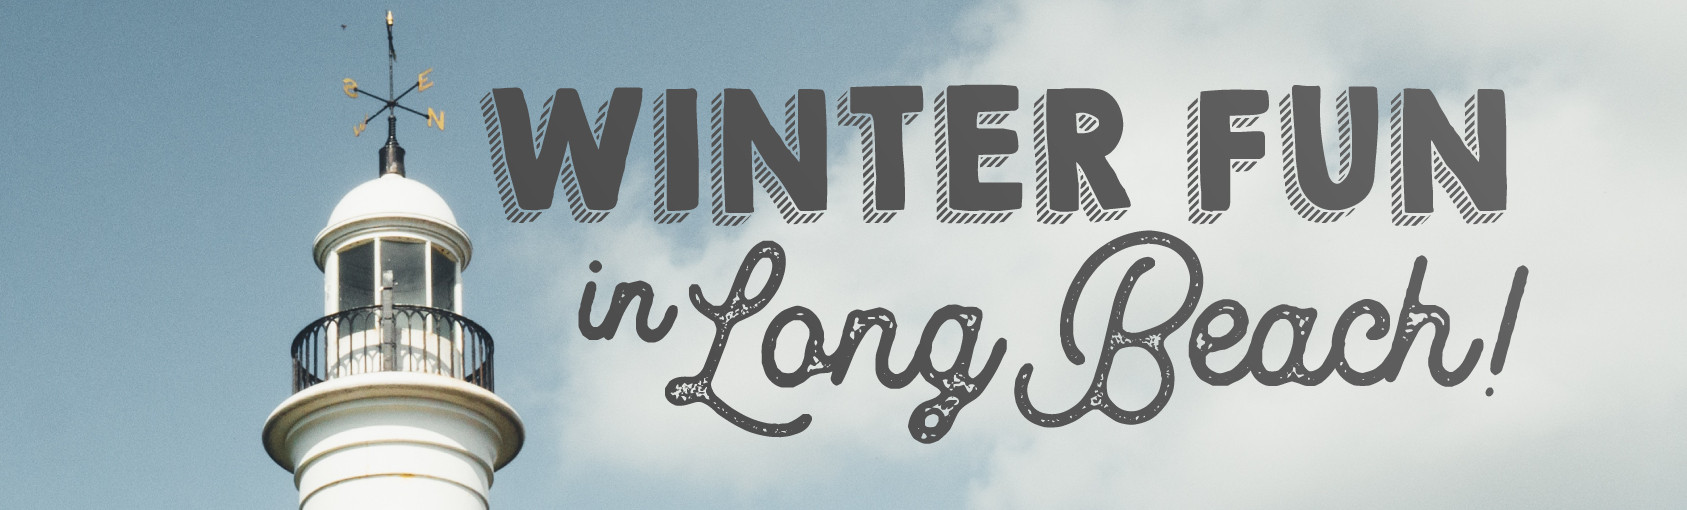 Enjoy Winter in Long Beach banner